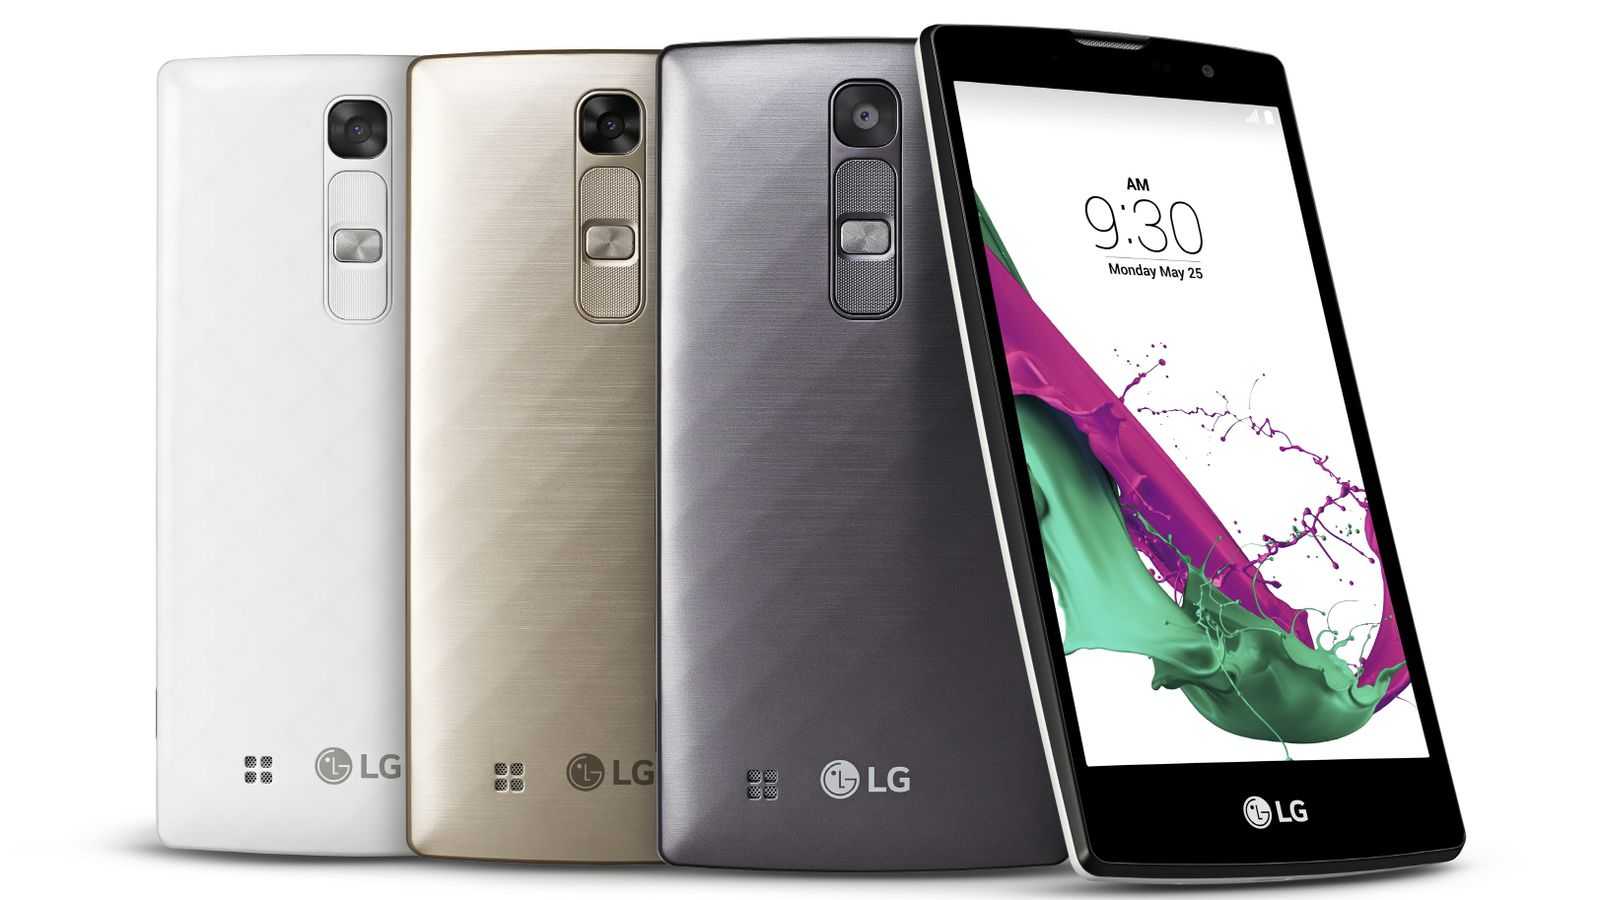 Lg Adds To The G4 Family With Two New Mid Range Devices